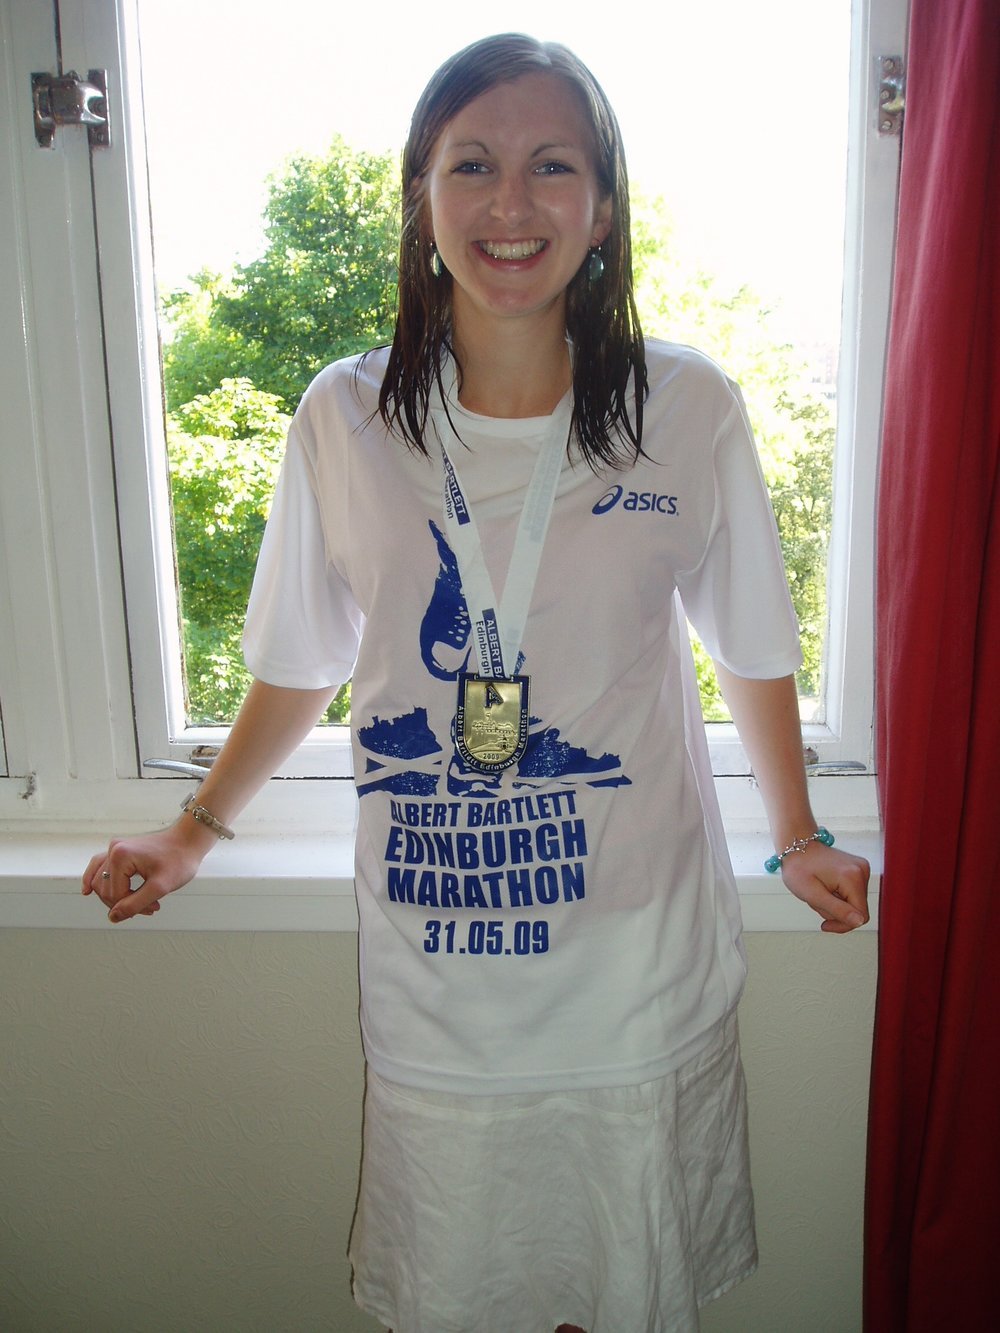 I was ecstatic with my first marathon in 2009, I've not looked back since!